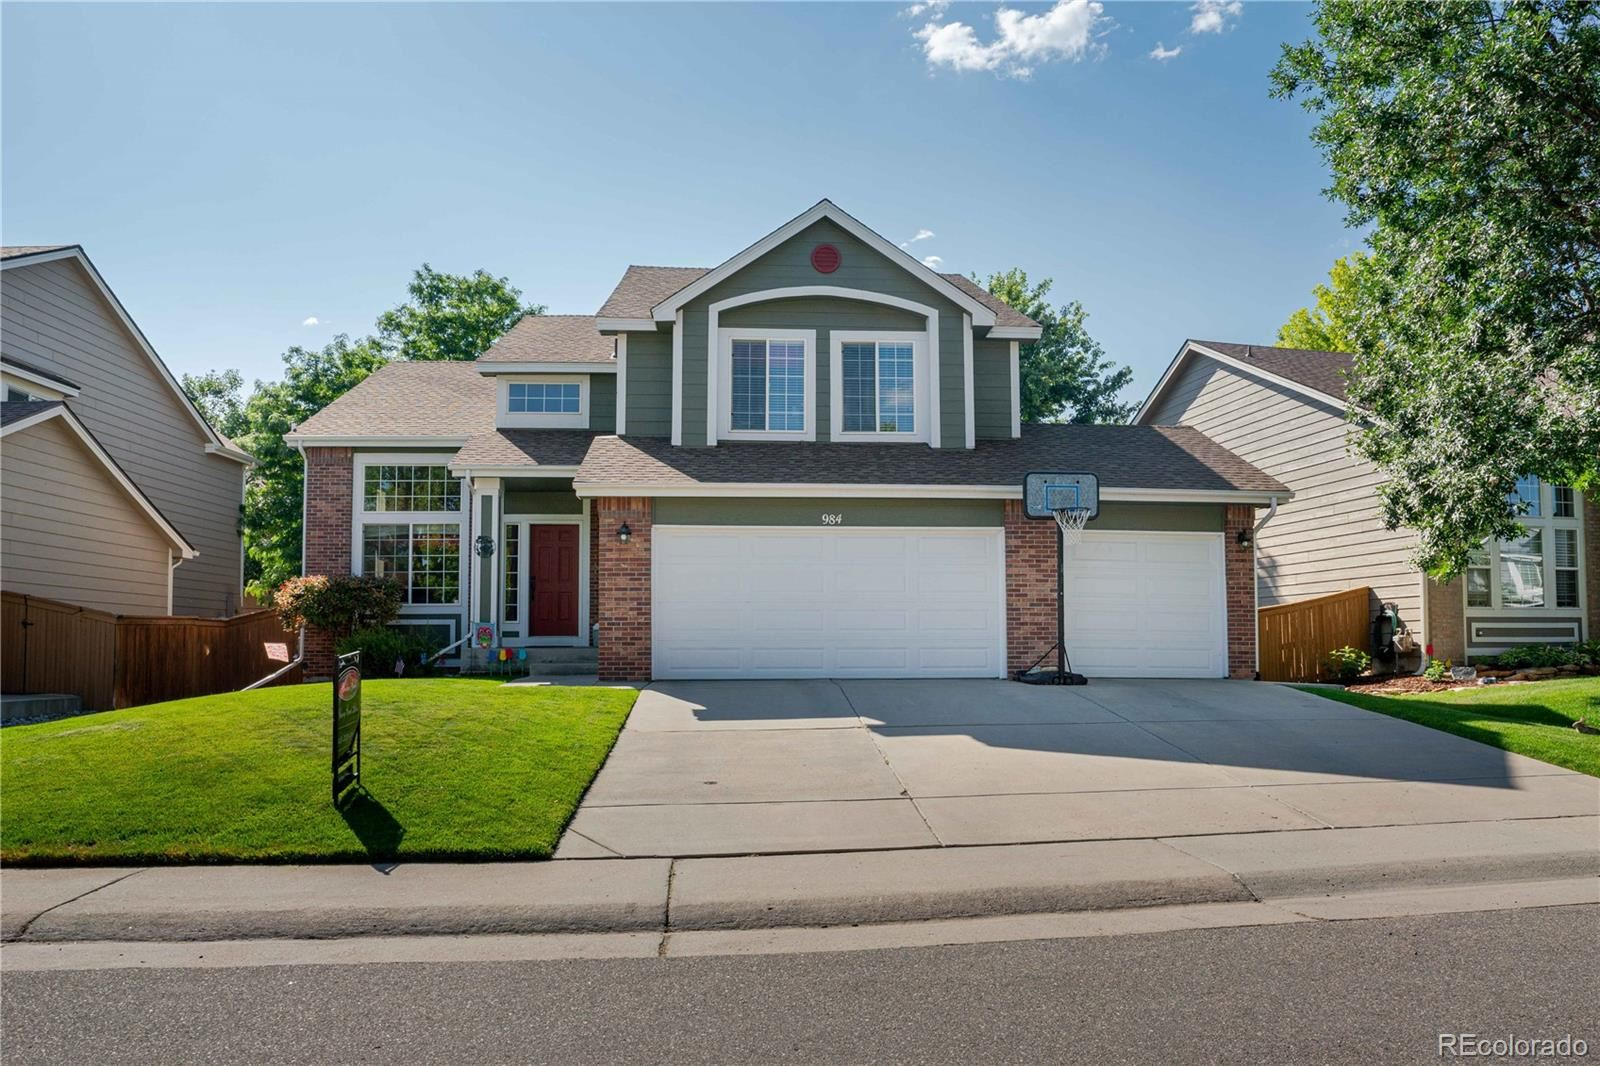 984 English Sparrow Trail, Highlands Ranch, CO 80129 - #: 9482367